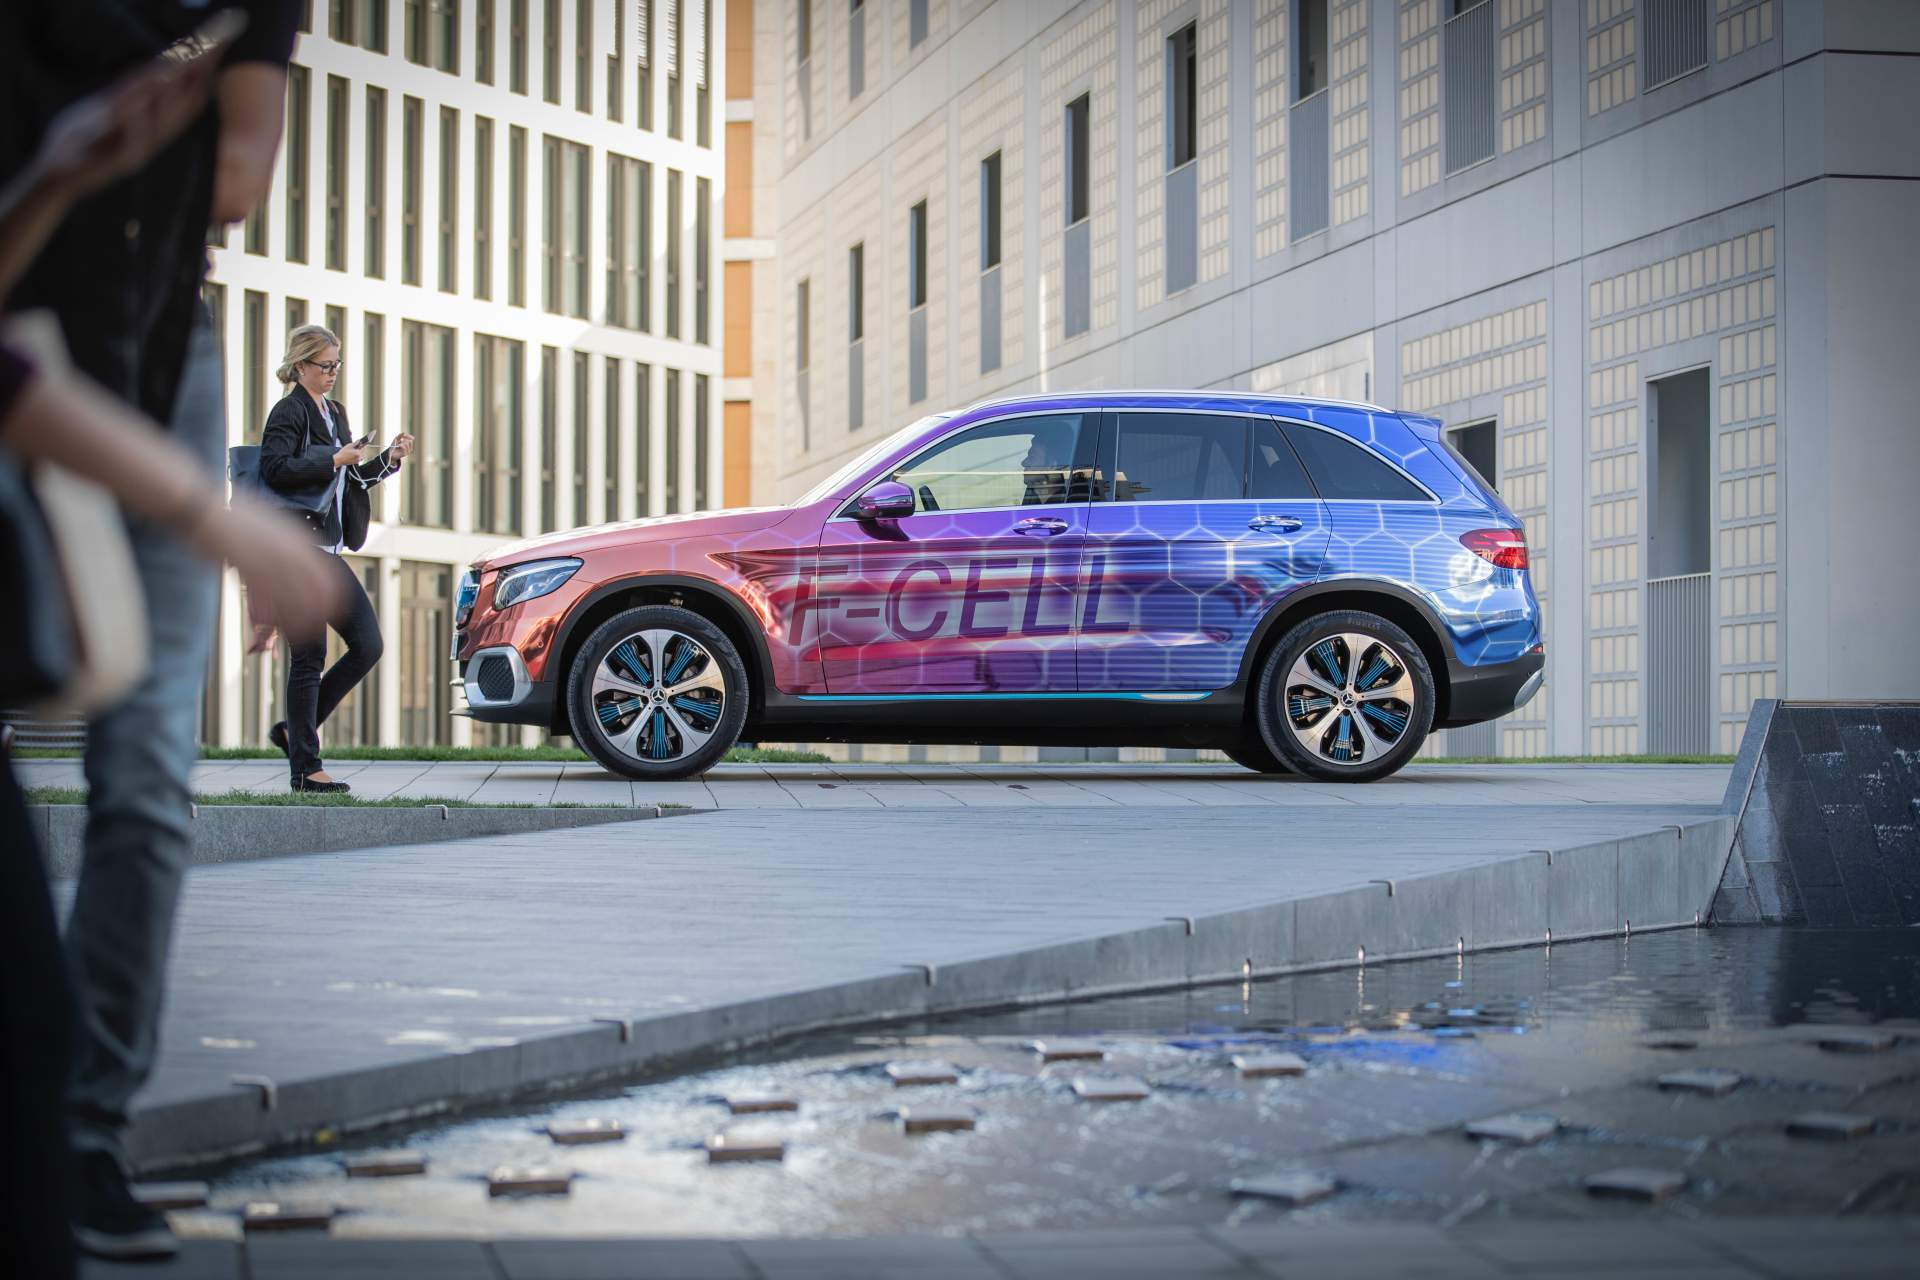 2019_Mercedes_GLC_F-Cell_0111